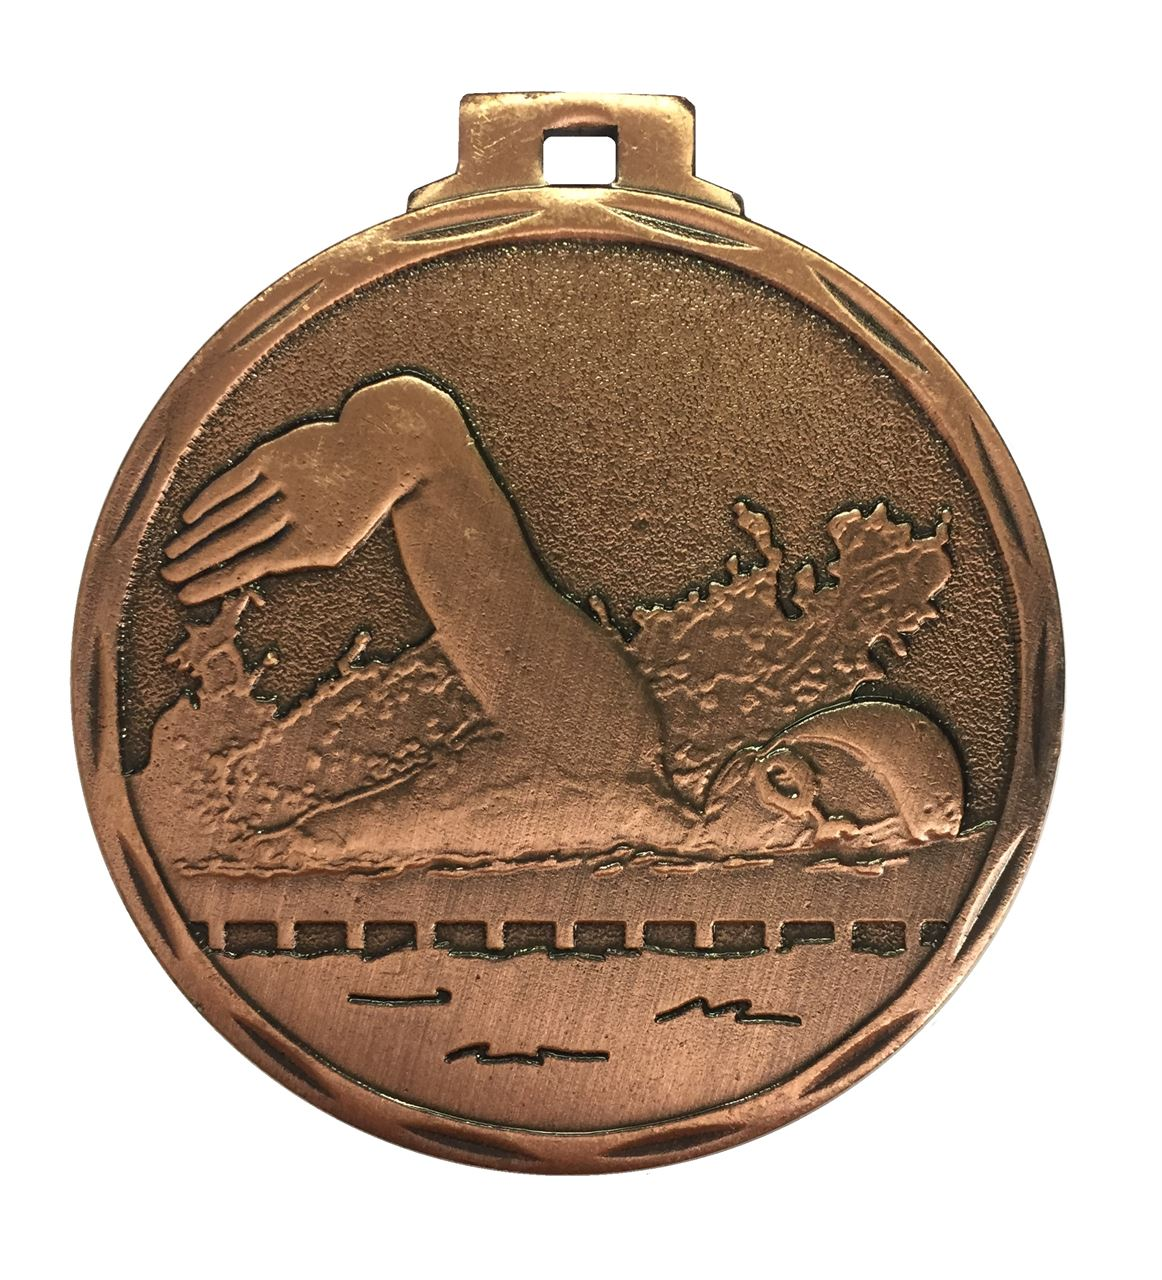 Budget Swimming Medal Copper - 7907